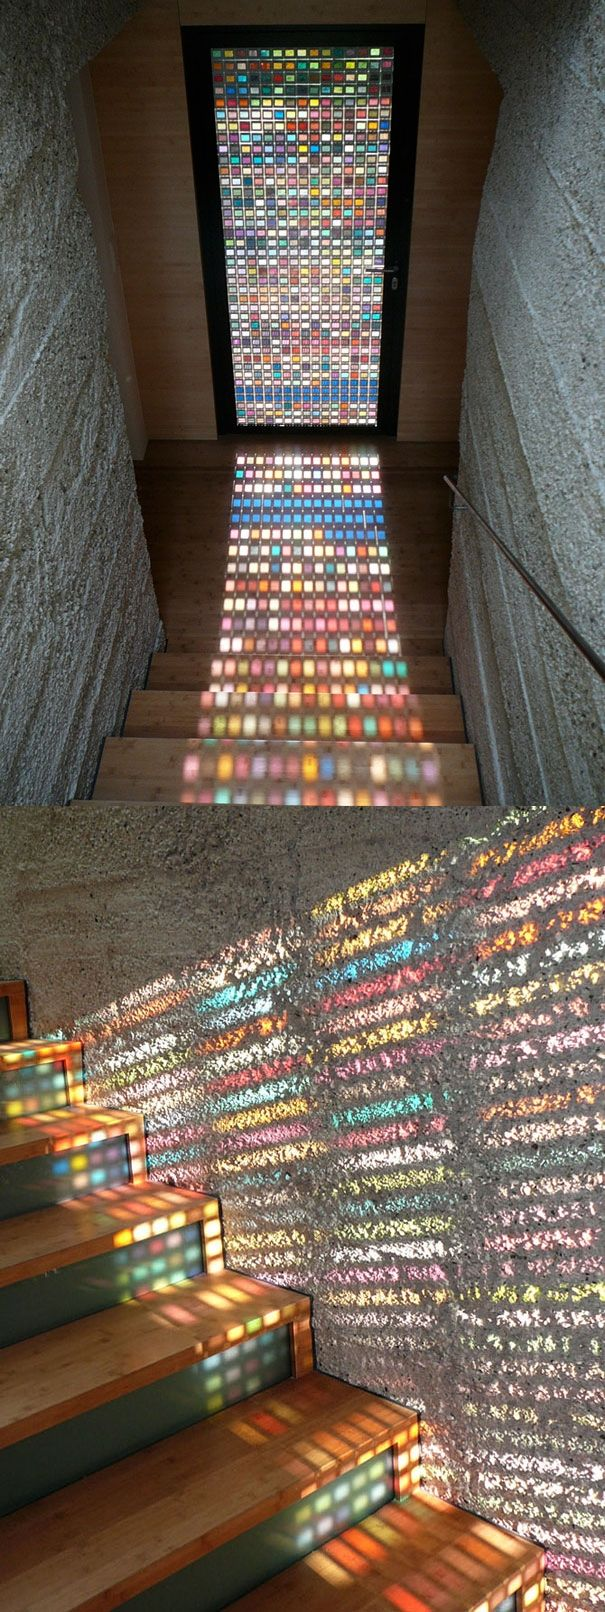 Stained Glass door made of Pantone swatches - by architect ©Armin Blasbichler http://studio.arminblasbichler.com/T-III (photo via BoredPanda.com)